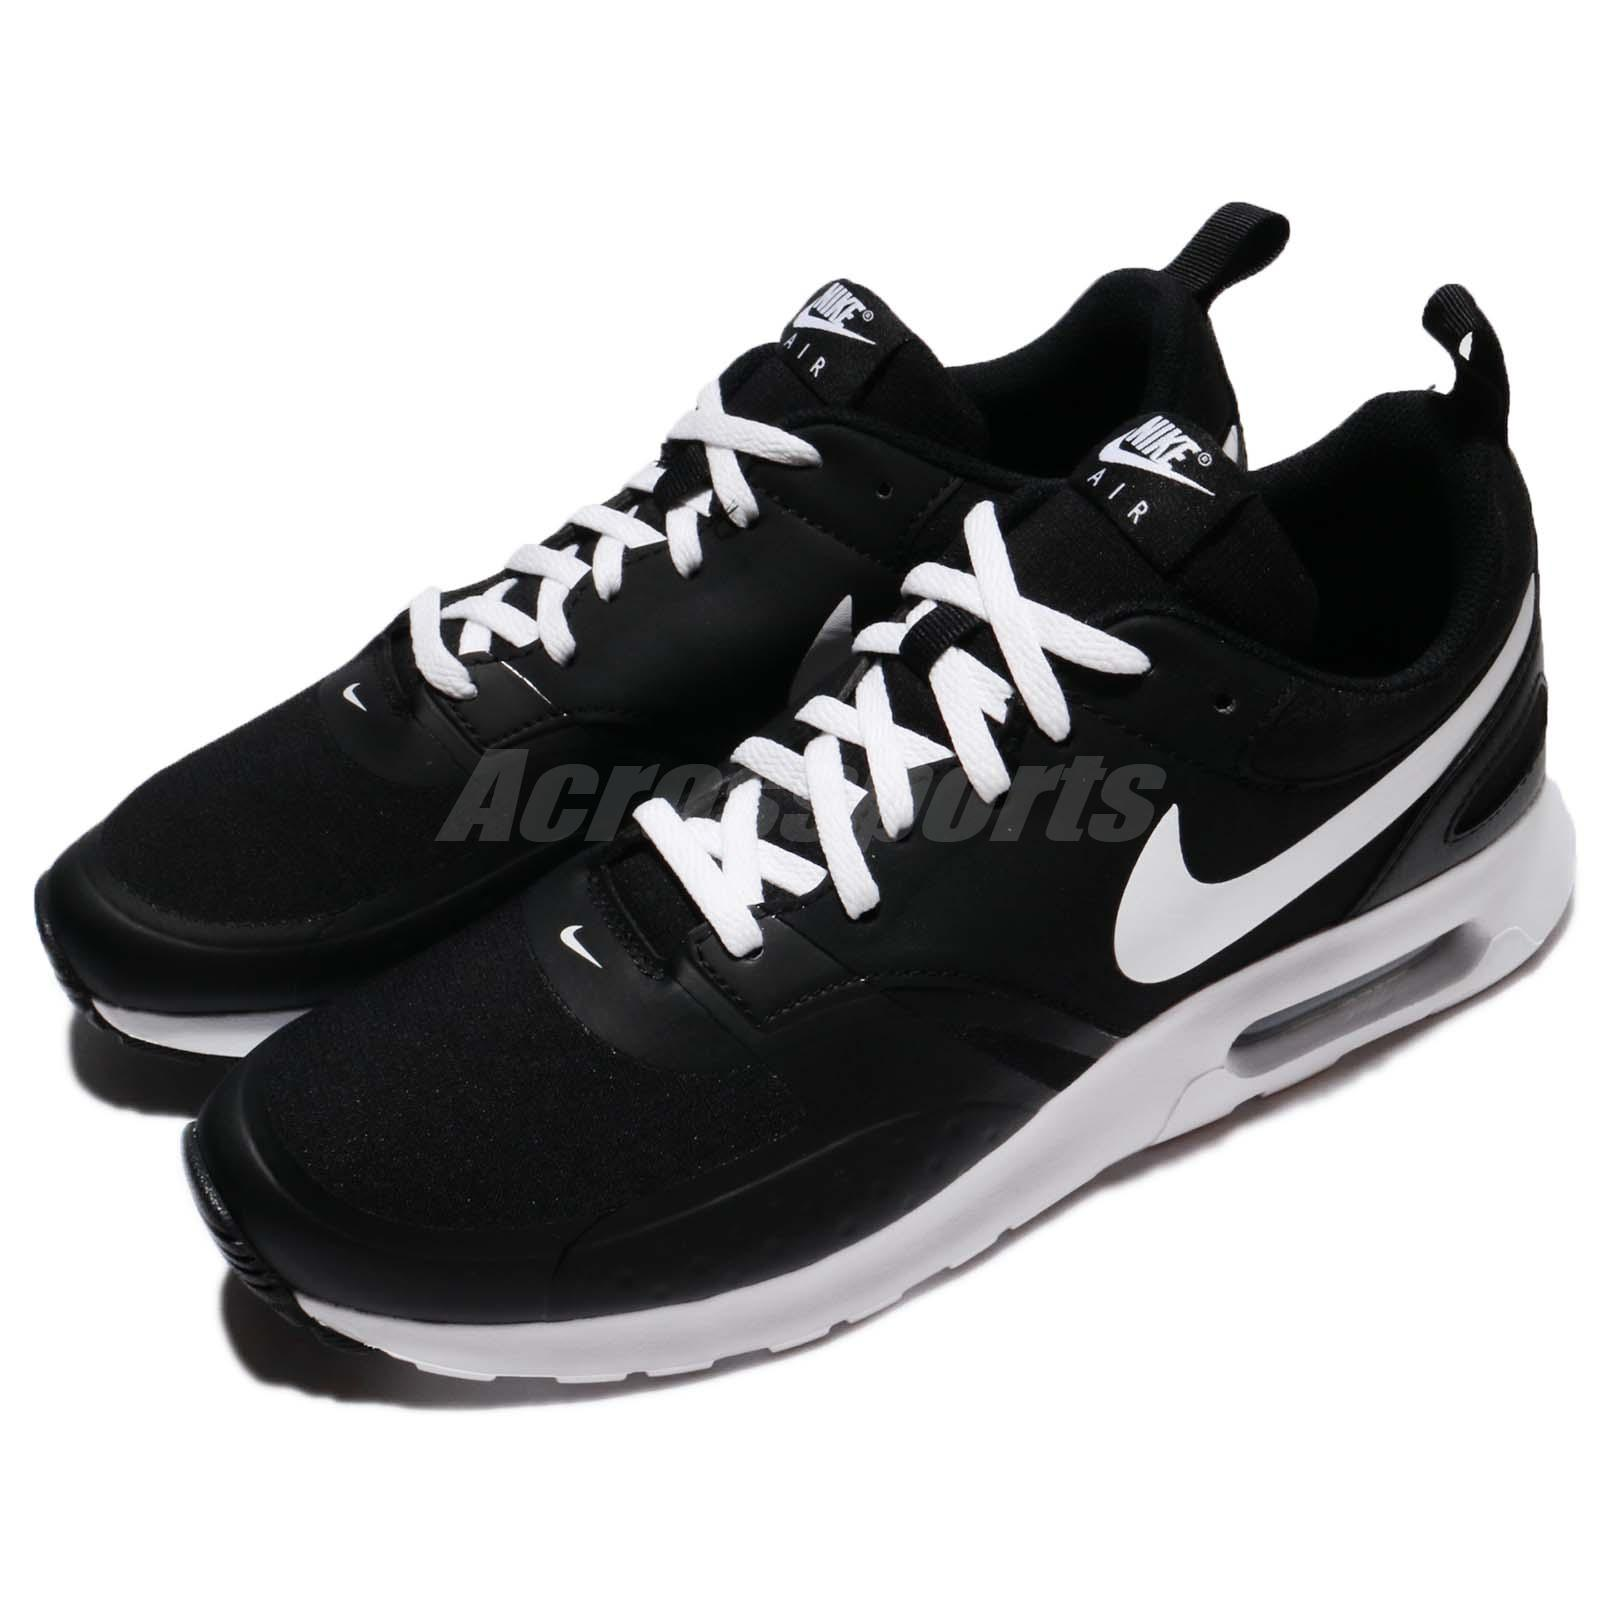 b9f92d3946 Details about Nike Air Max Vision Black White Men Running Shoes Sneakers  Trainers 918230-007